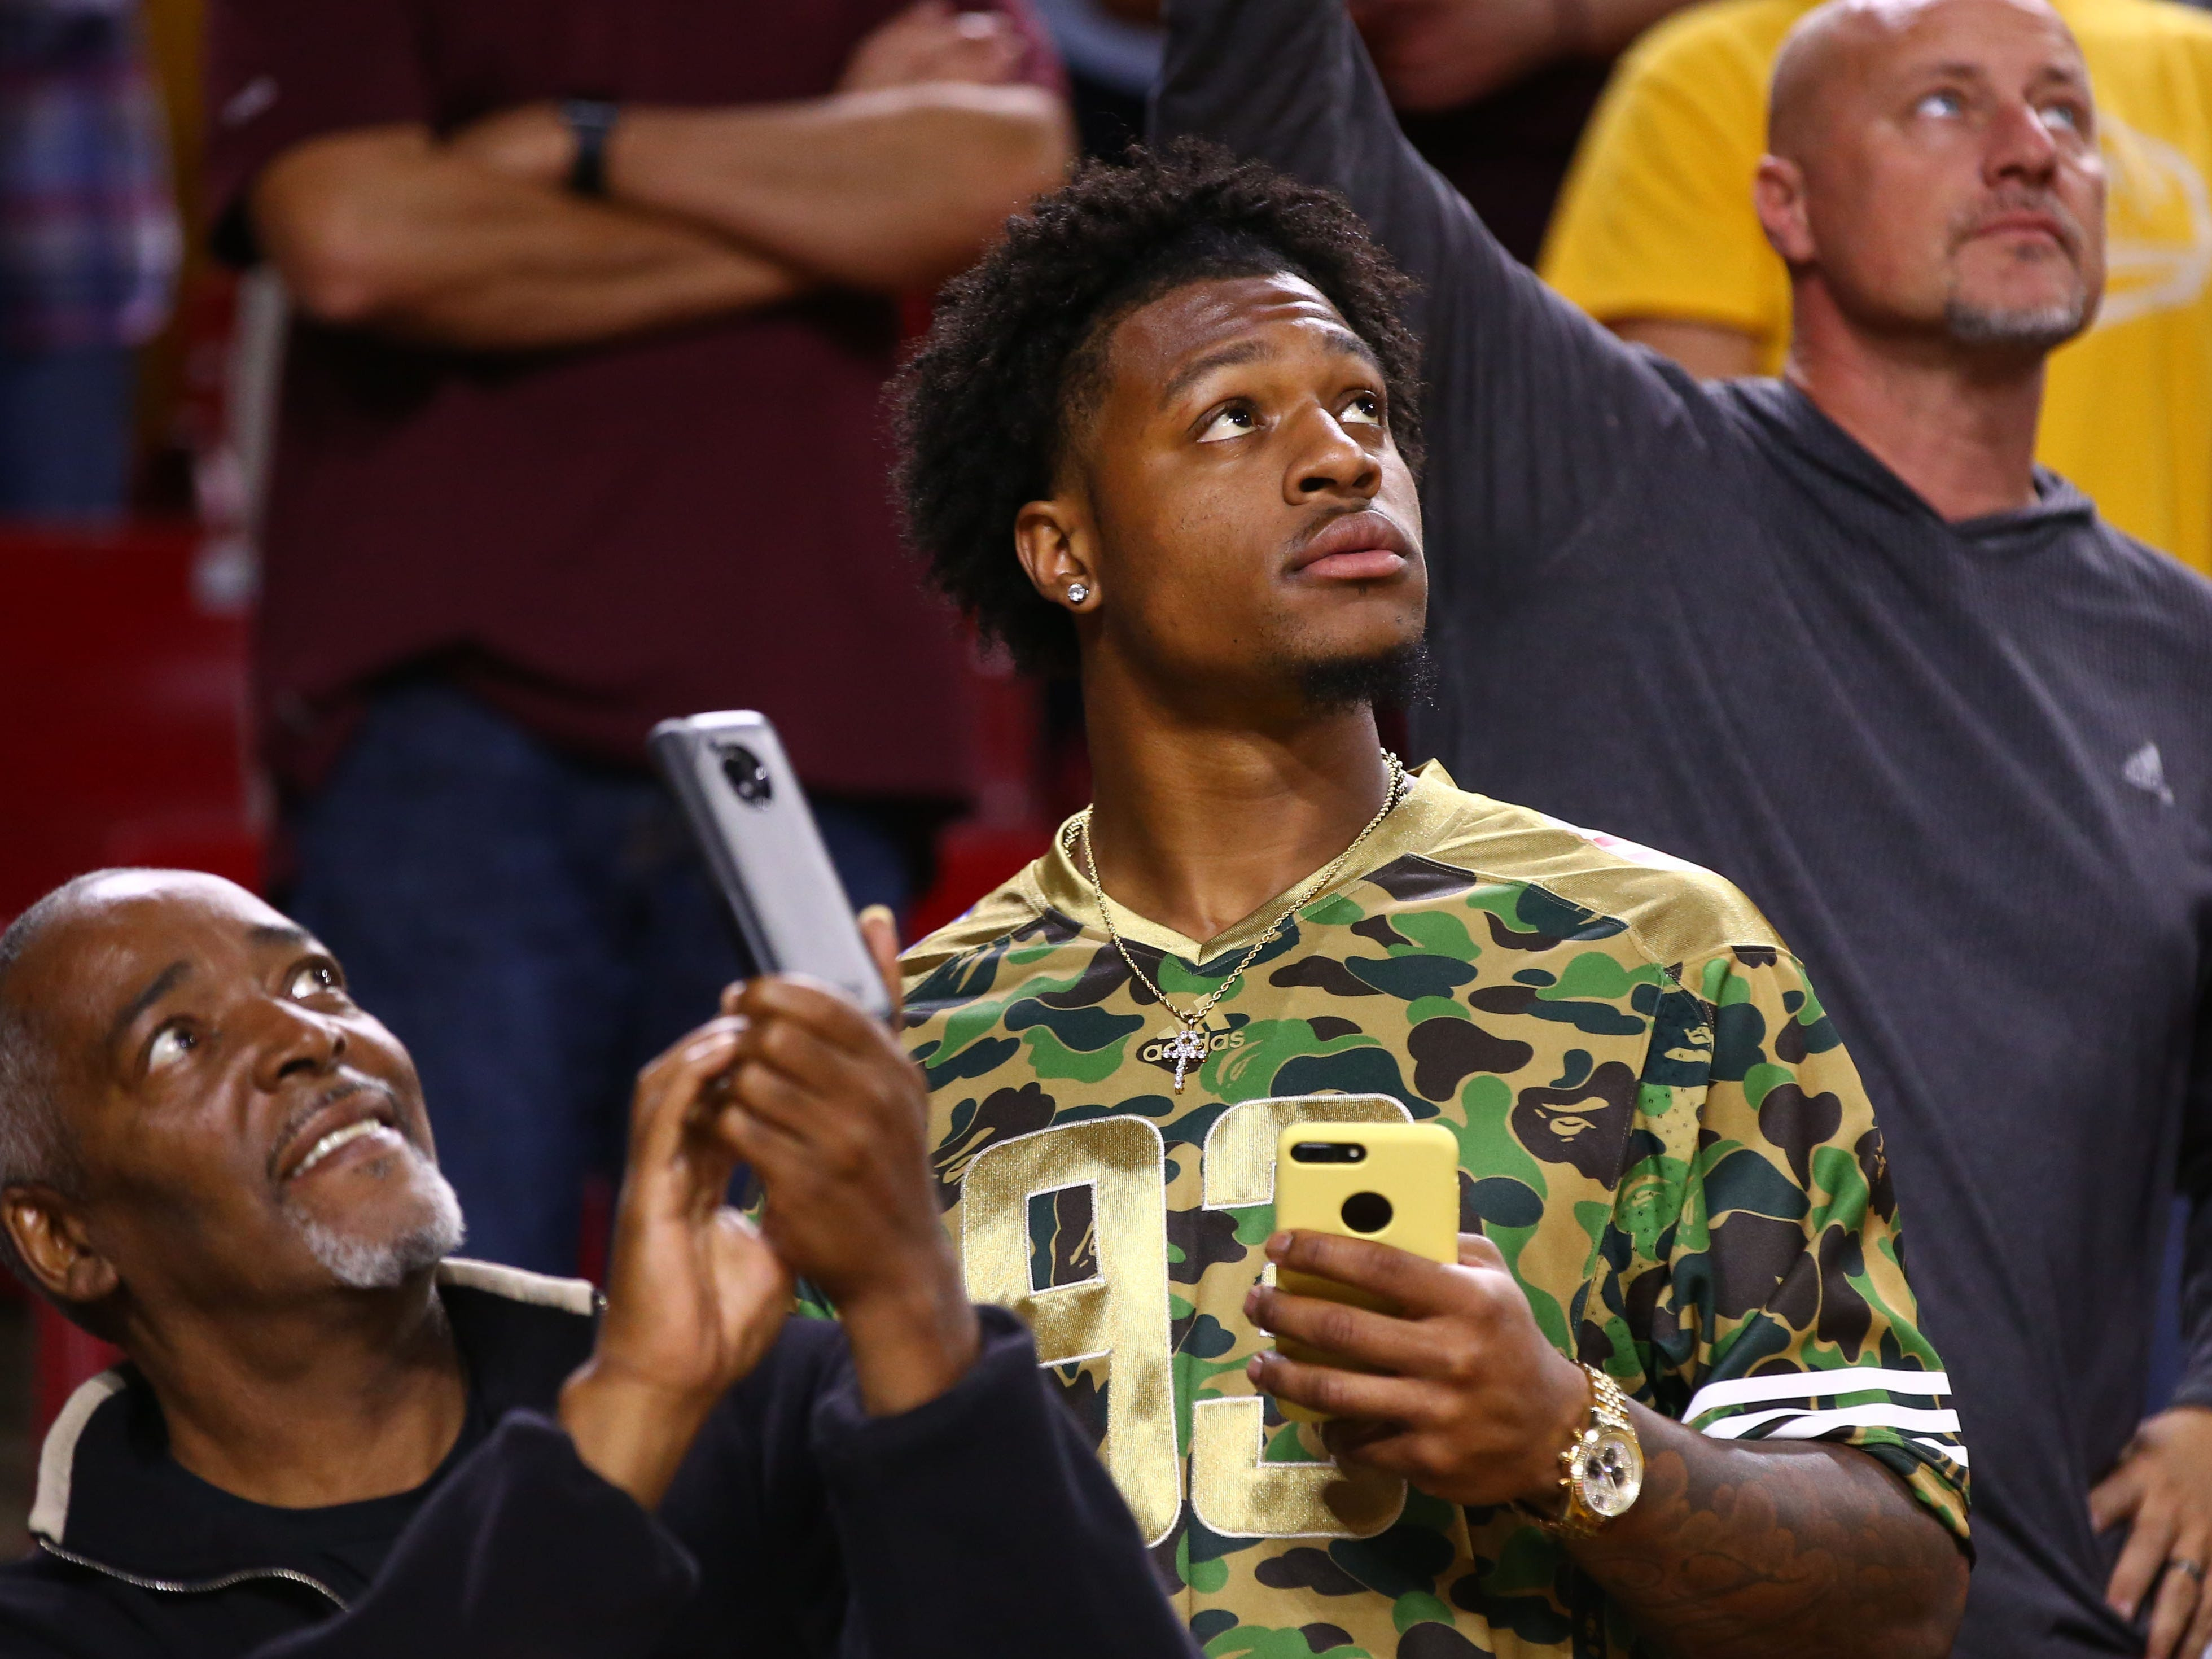 Former Arizona State Sun Devils wide receiver N'Keal Harry on Mar. 3, 2019, at Wells Fargo Arena in Tempe, Ariz.